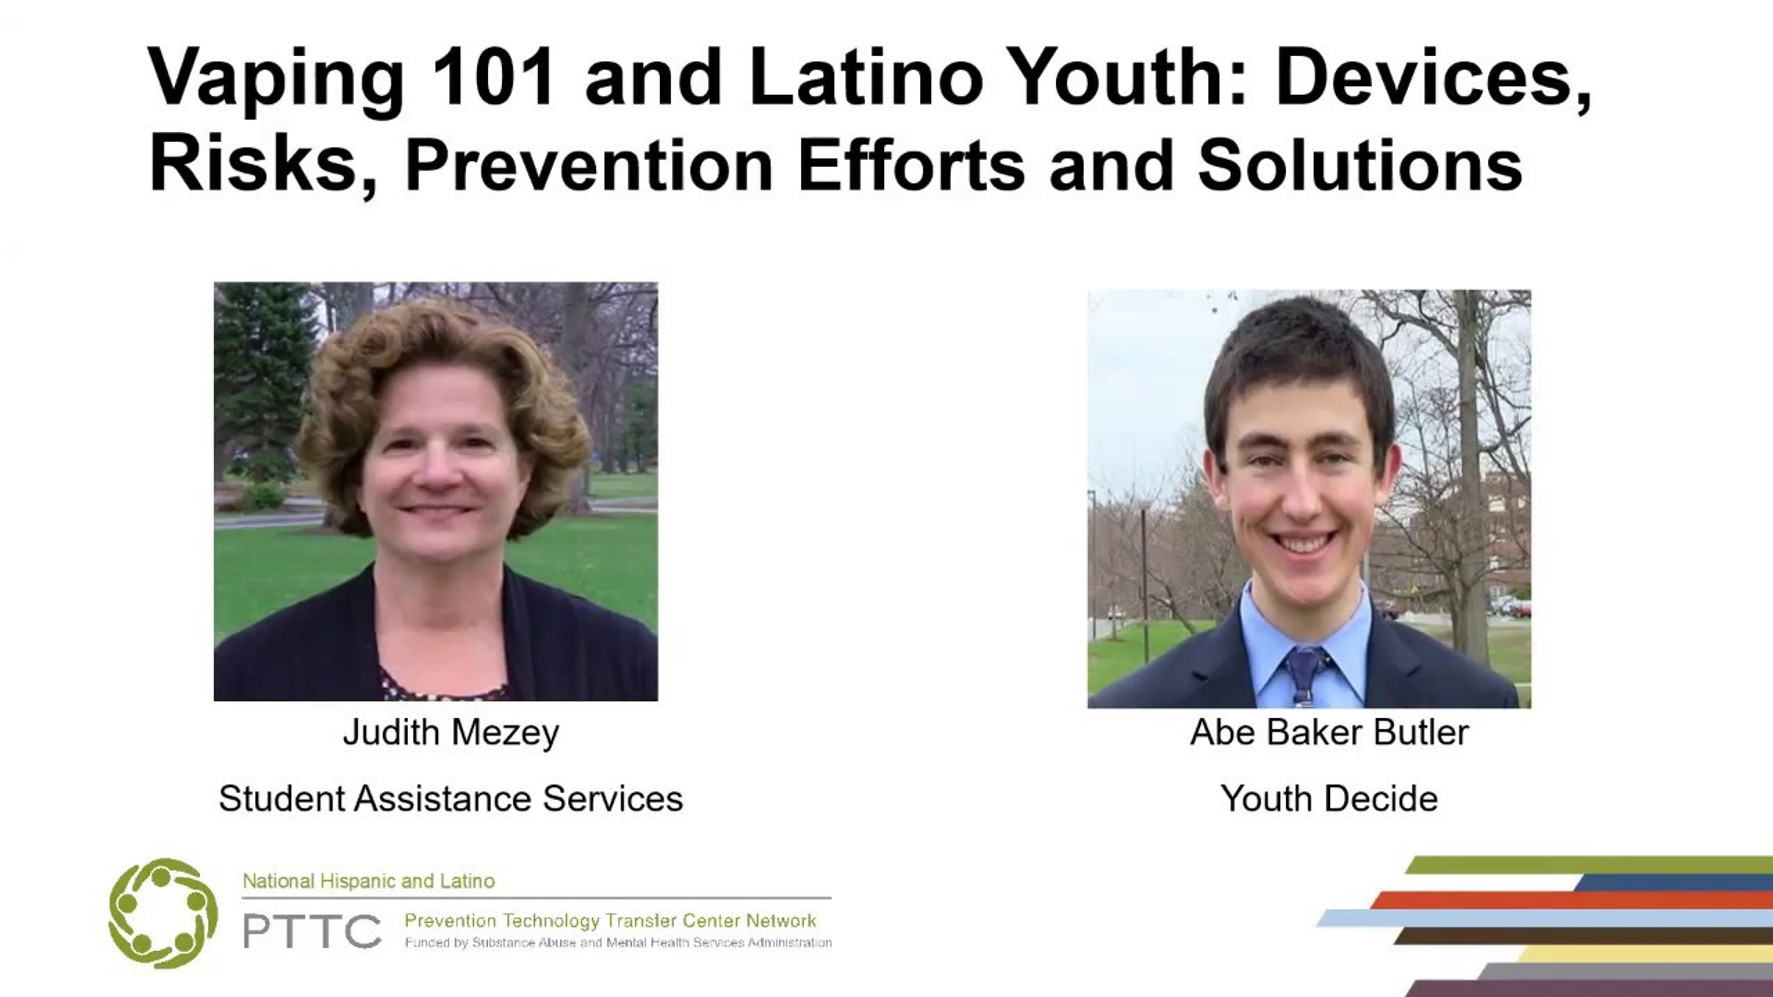 Vaping 101 and Latino Youth: Devices, risks, prevention efforts and solutions